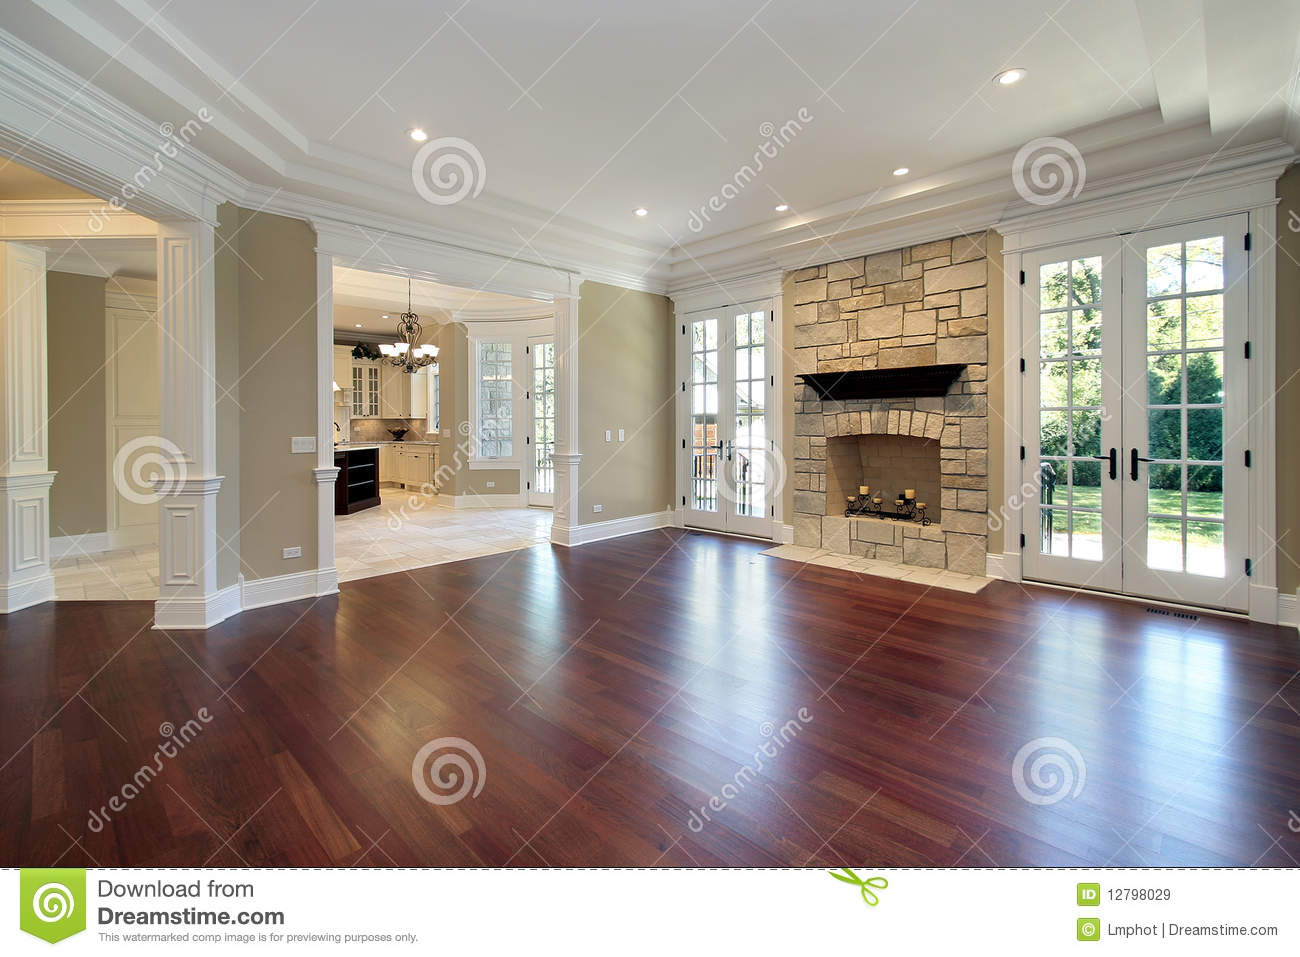 Living Room With Stone Fireplace living room with stone fireplace royalty free stock images - image